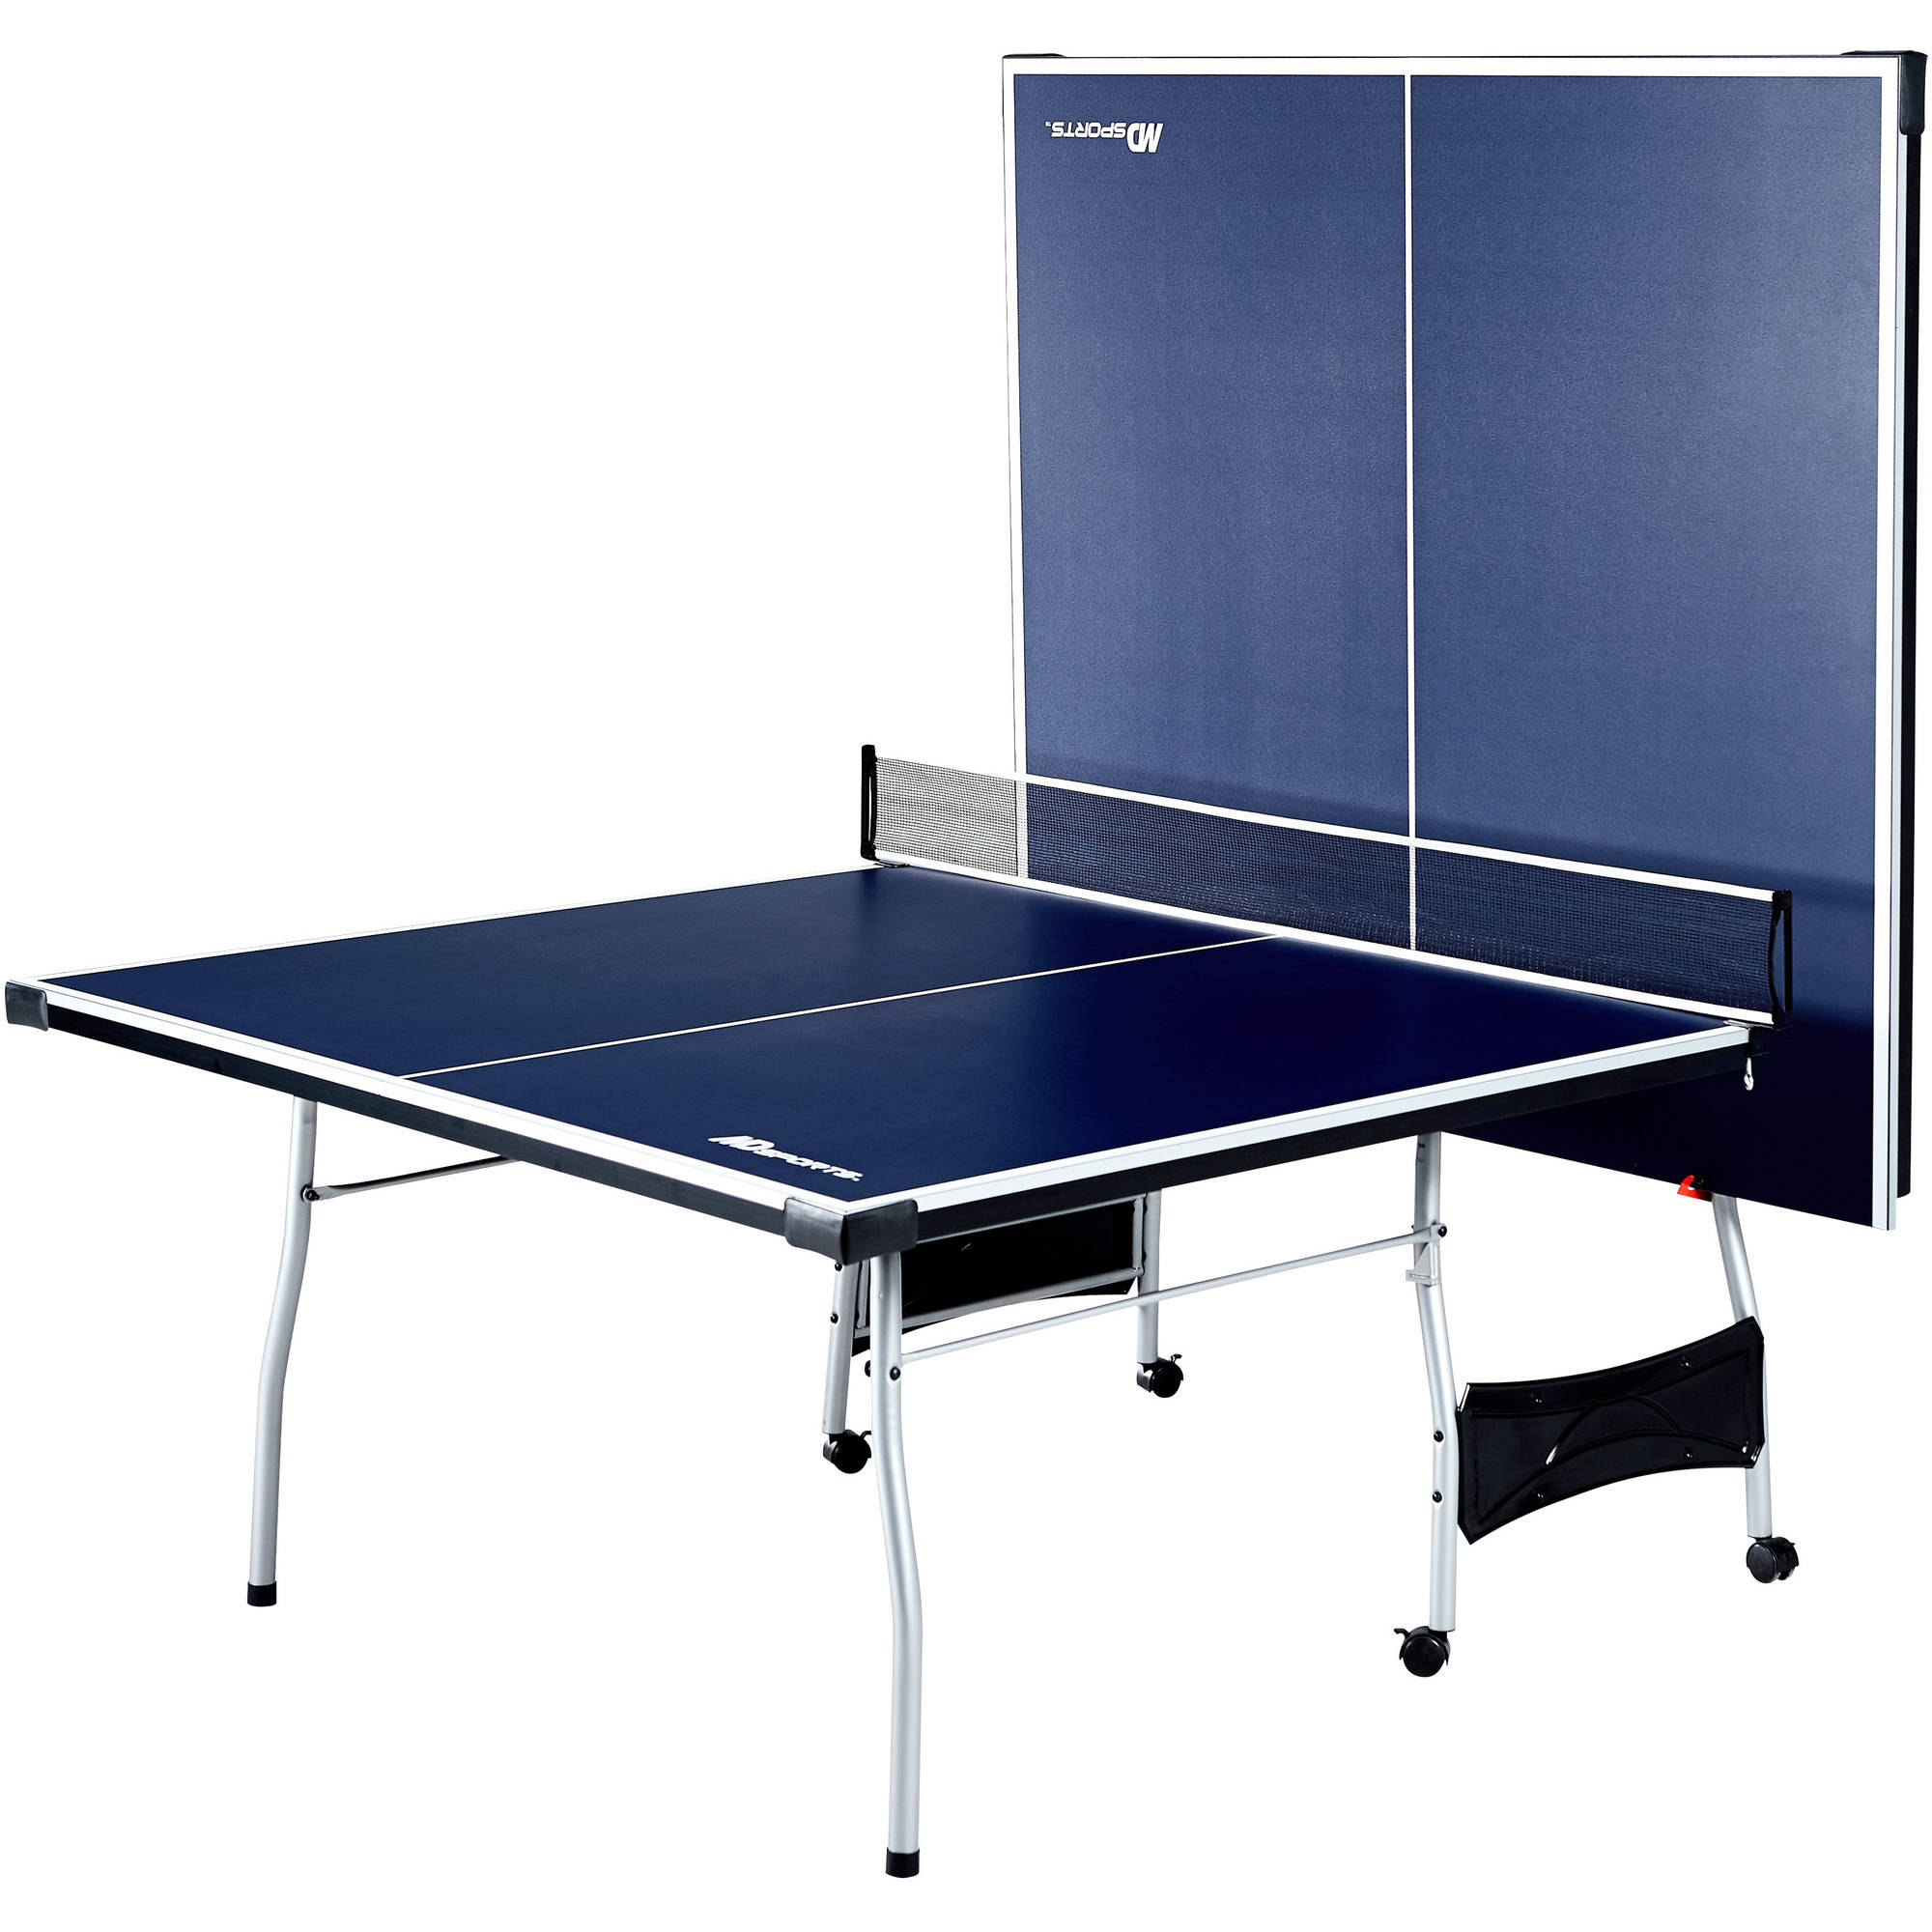 Attractive MD Sports Official Size Table Tennis Table   Walmart.com